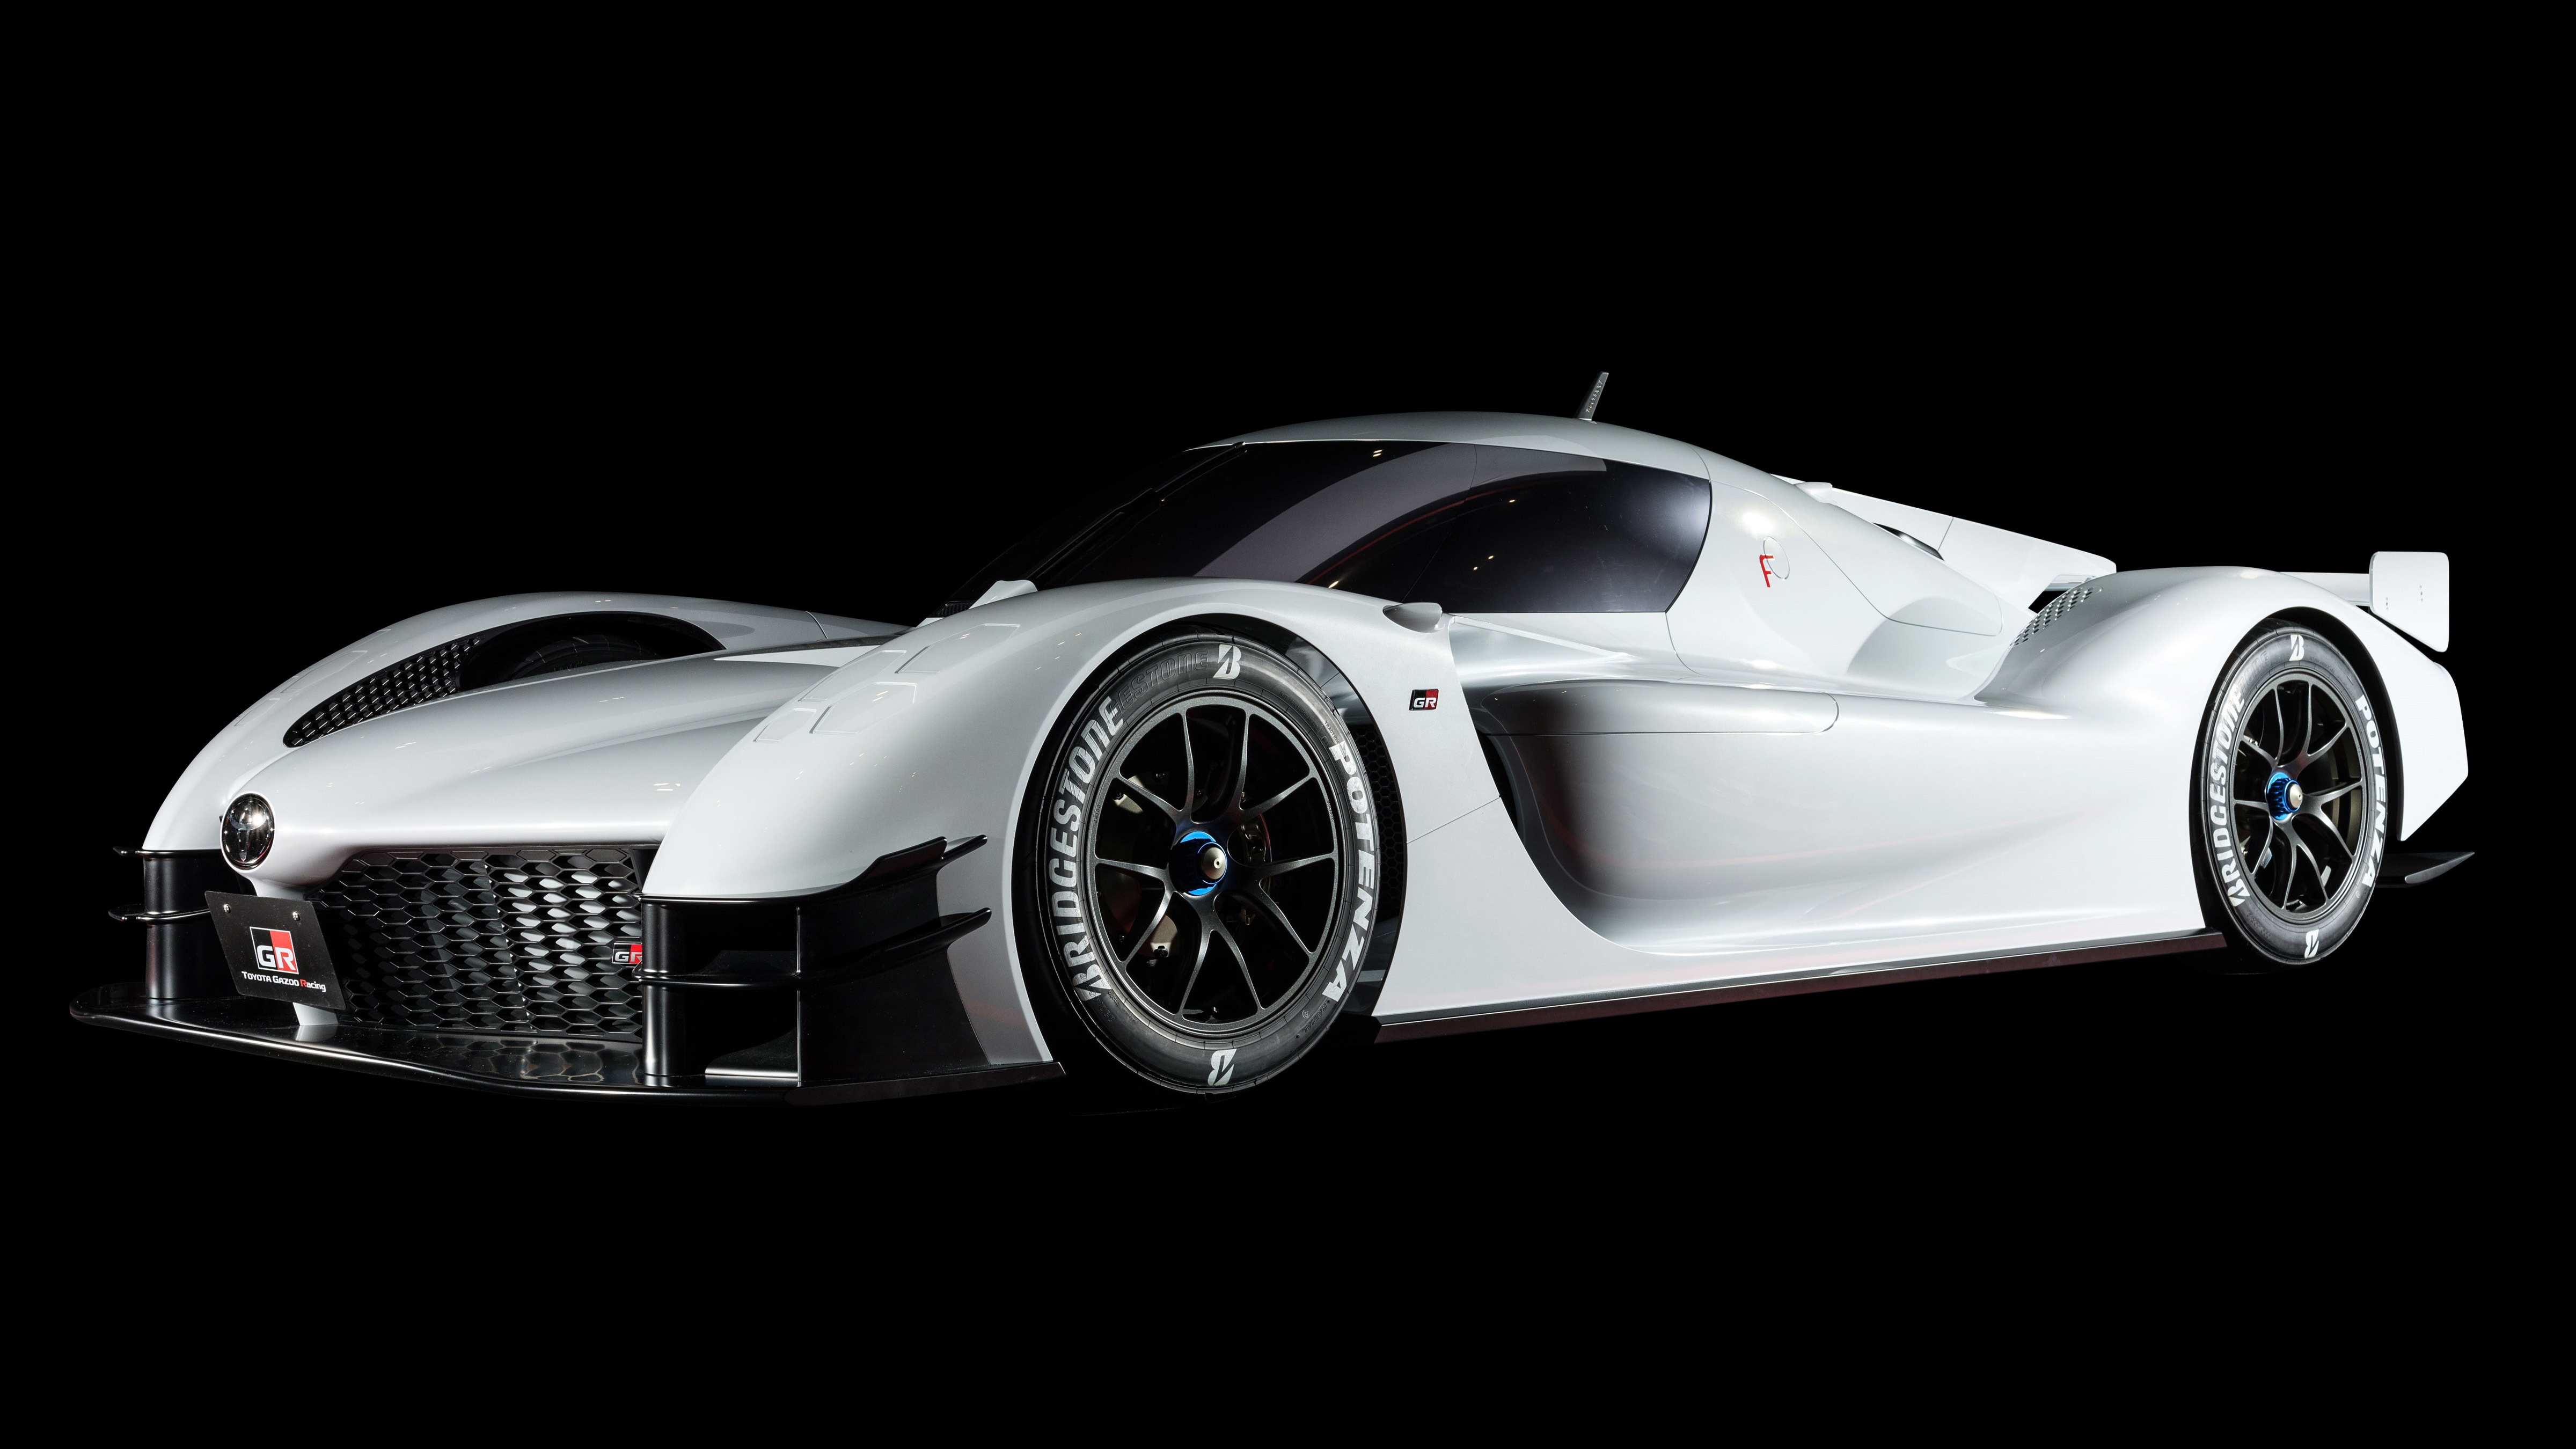 Toyota has Confirmed Development of a Road-going Hypercar 8